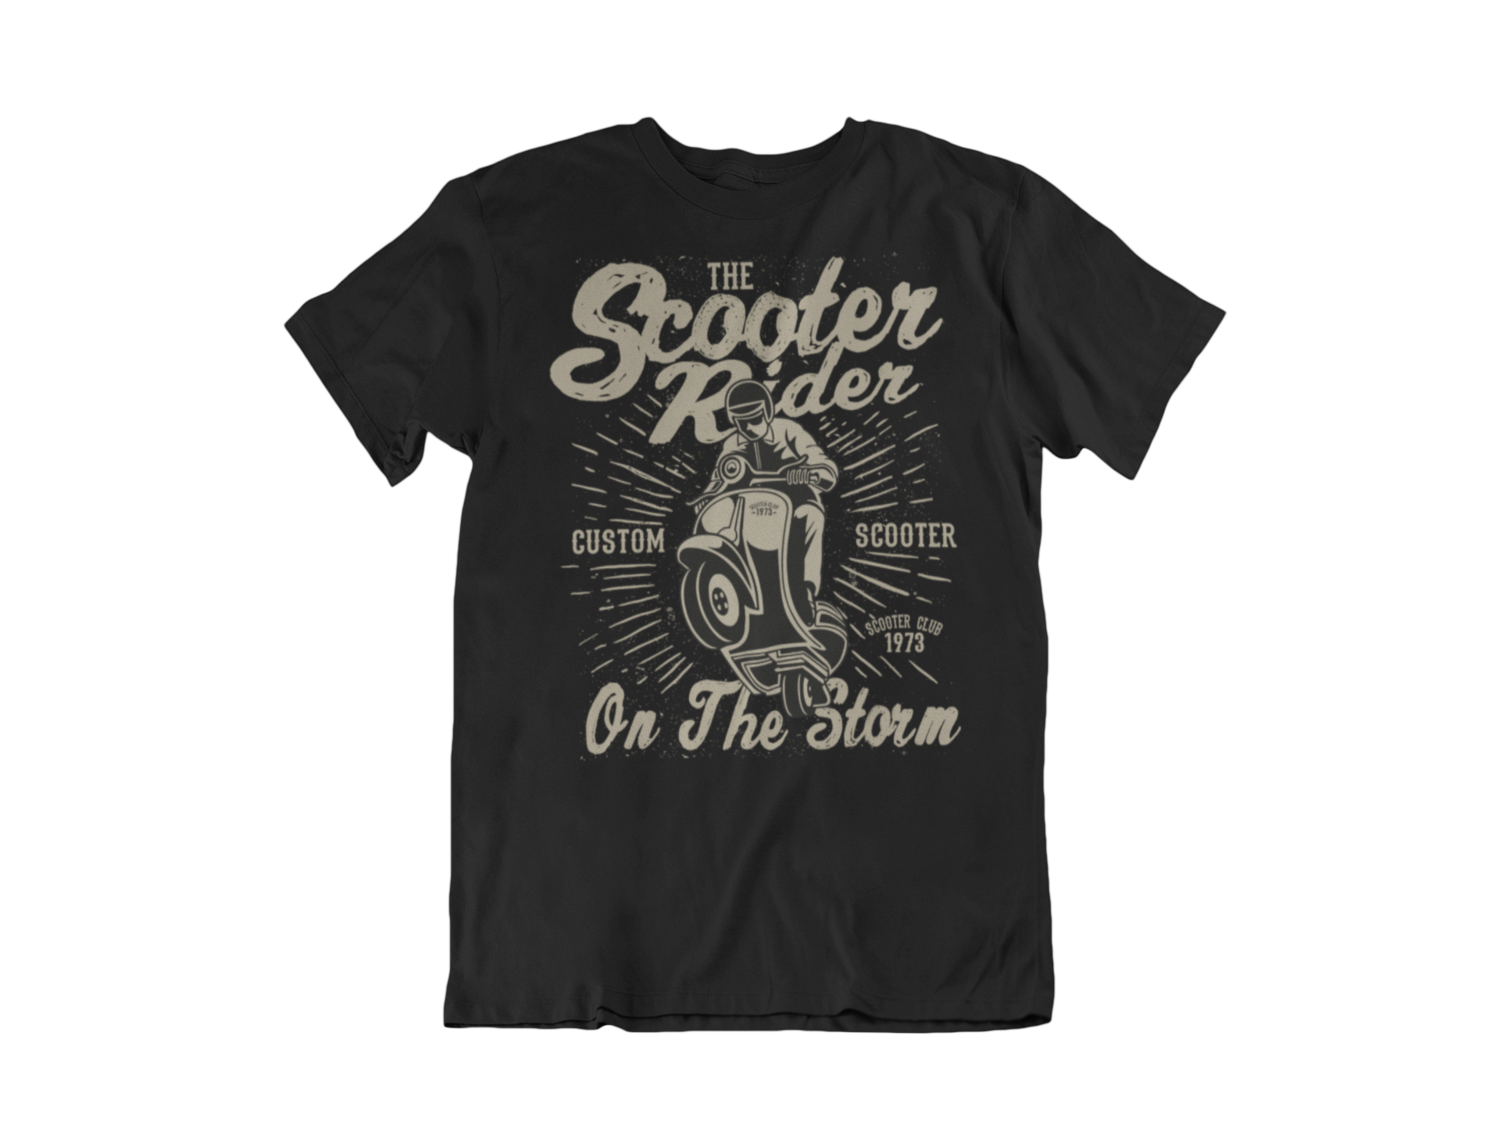 SCOOTER RIDER T-SHIRT FOR MEN